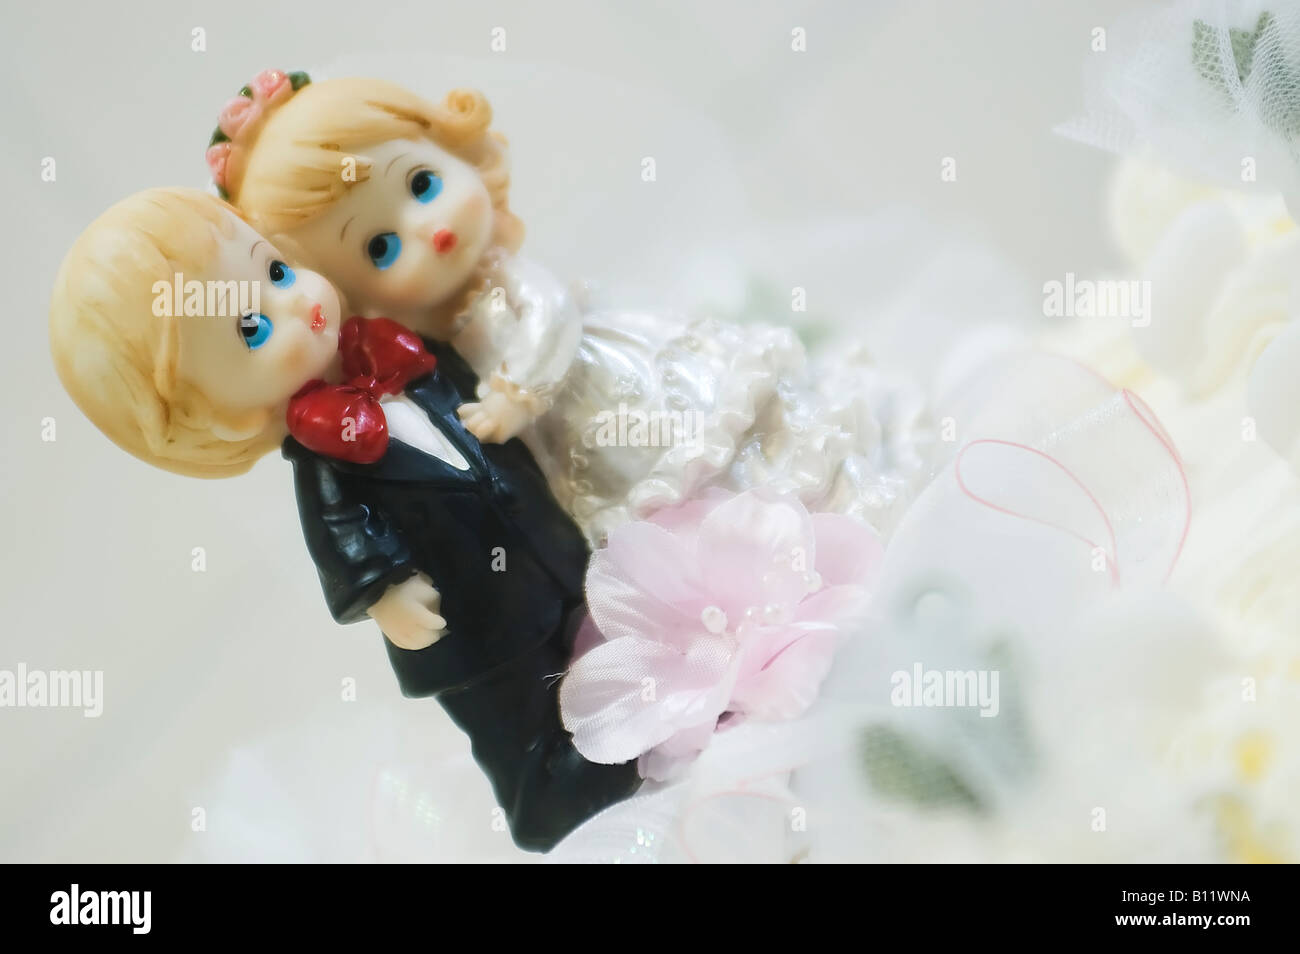 Sweet Children Couple Of Bride And Groom On The Top Of A Wedding Cake Stock Photo Alamy